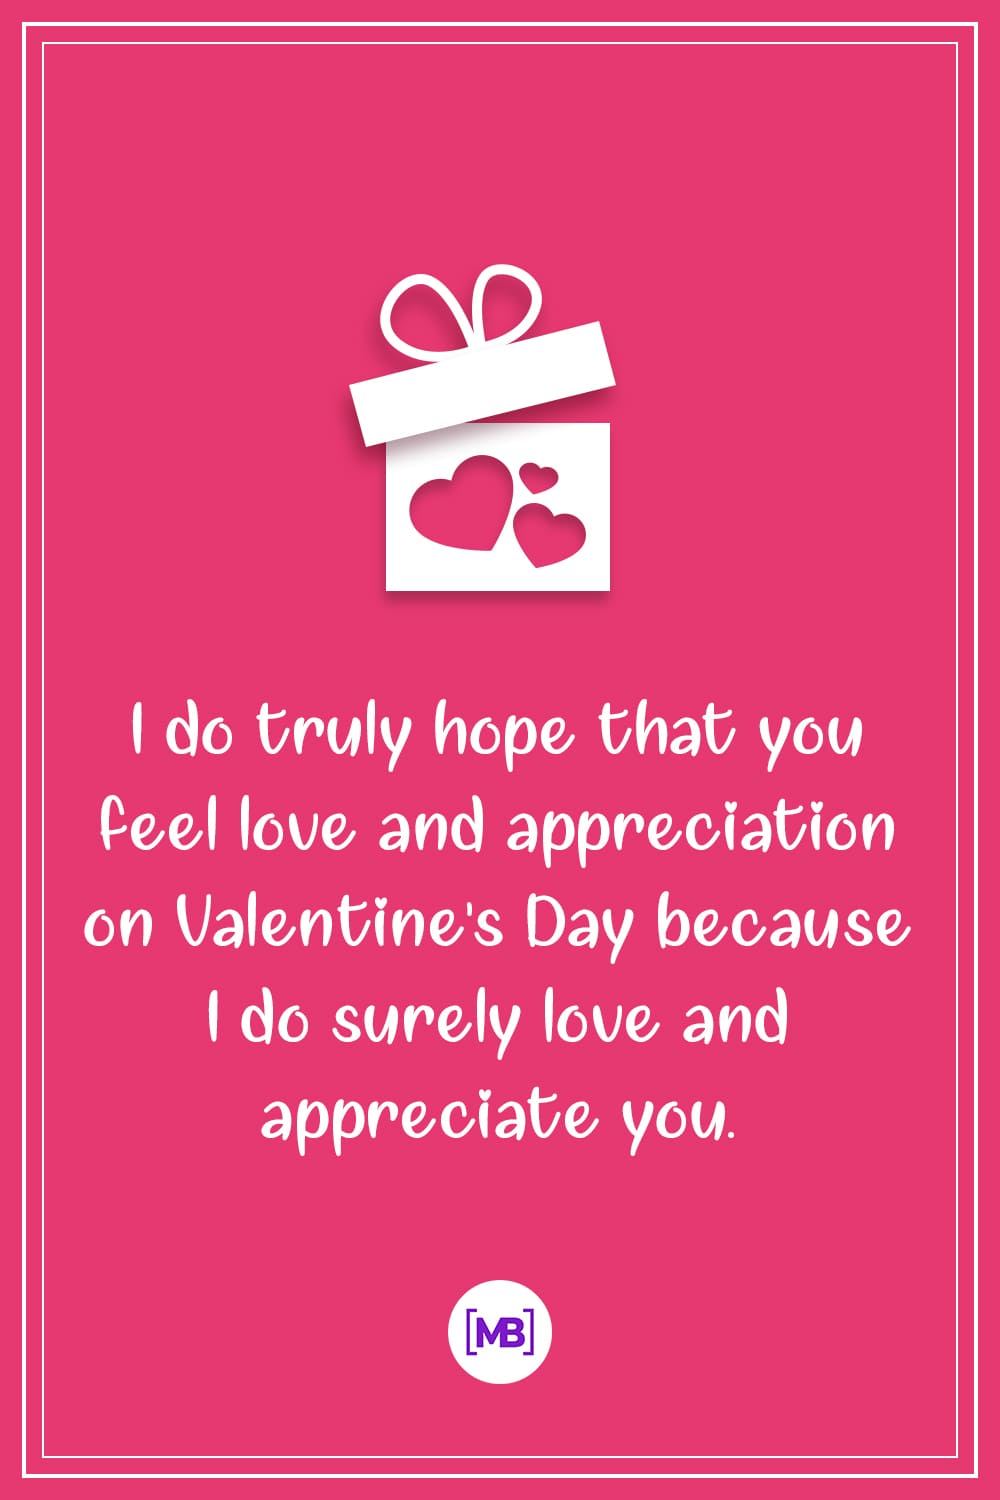 I do truly hope that you feel love and appreciation on Valentine's Day because I do surely love and appreciate you.